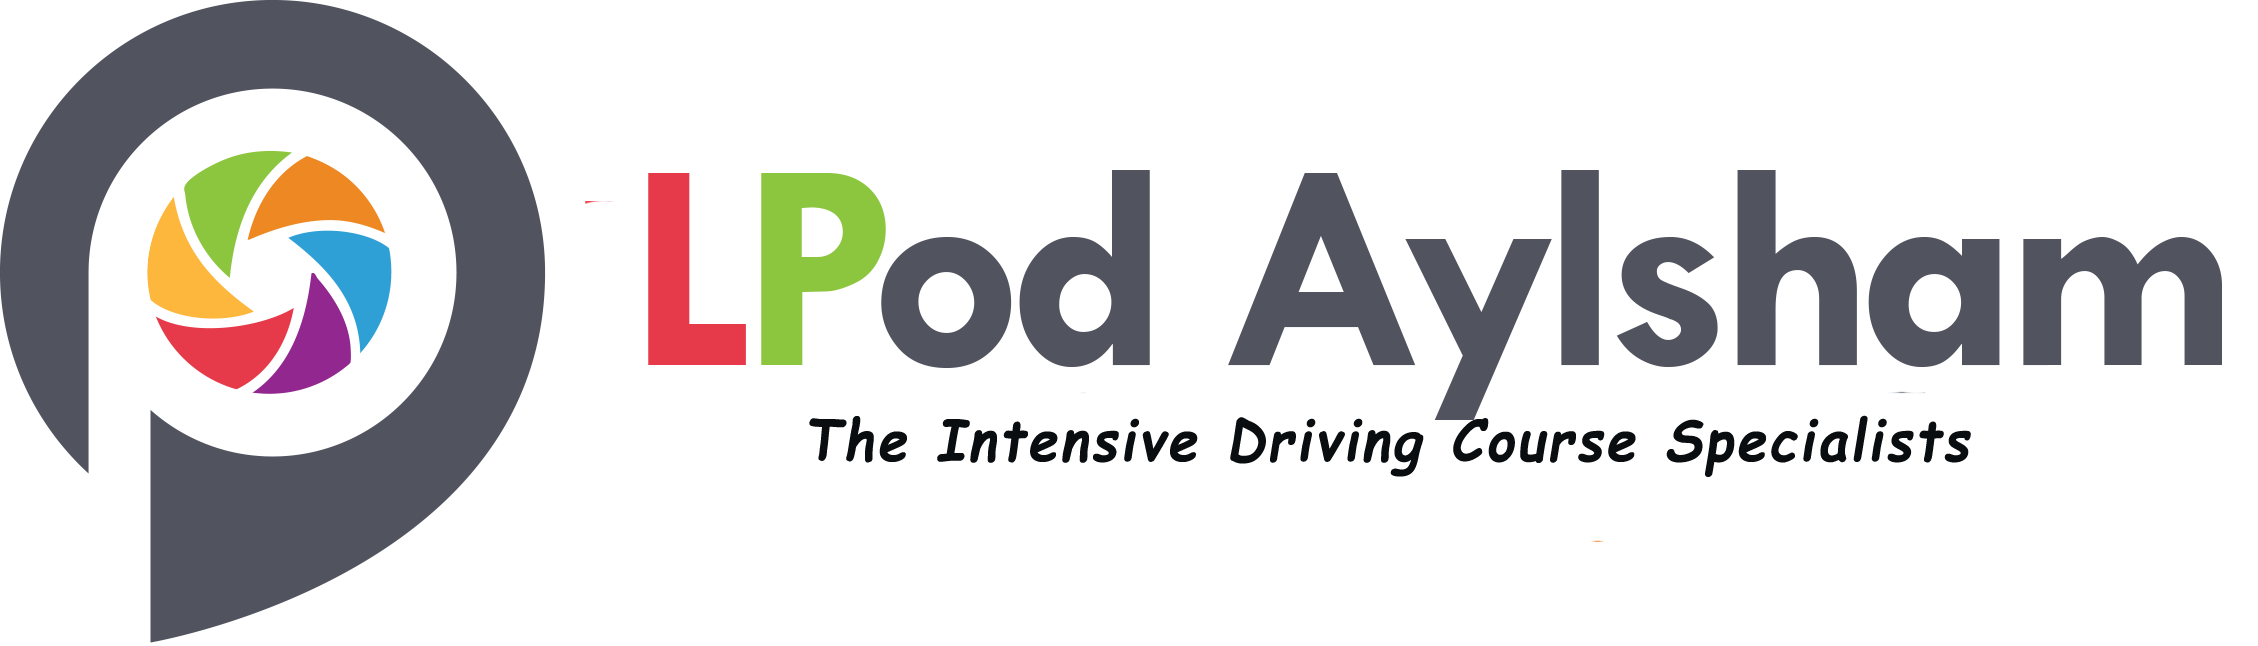 intensive driving courses in Aylsham